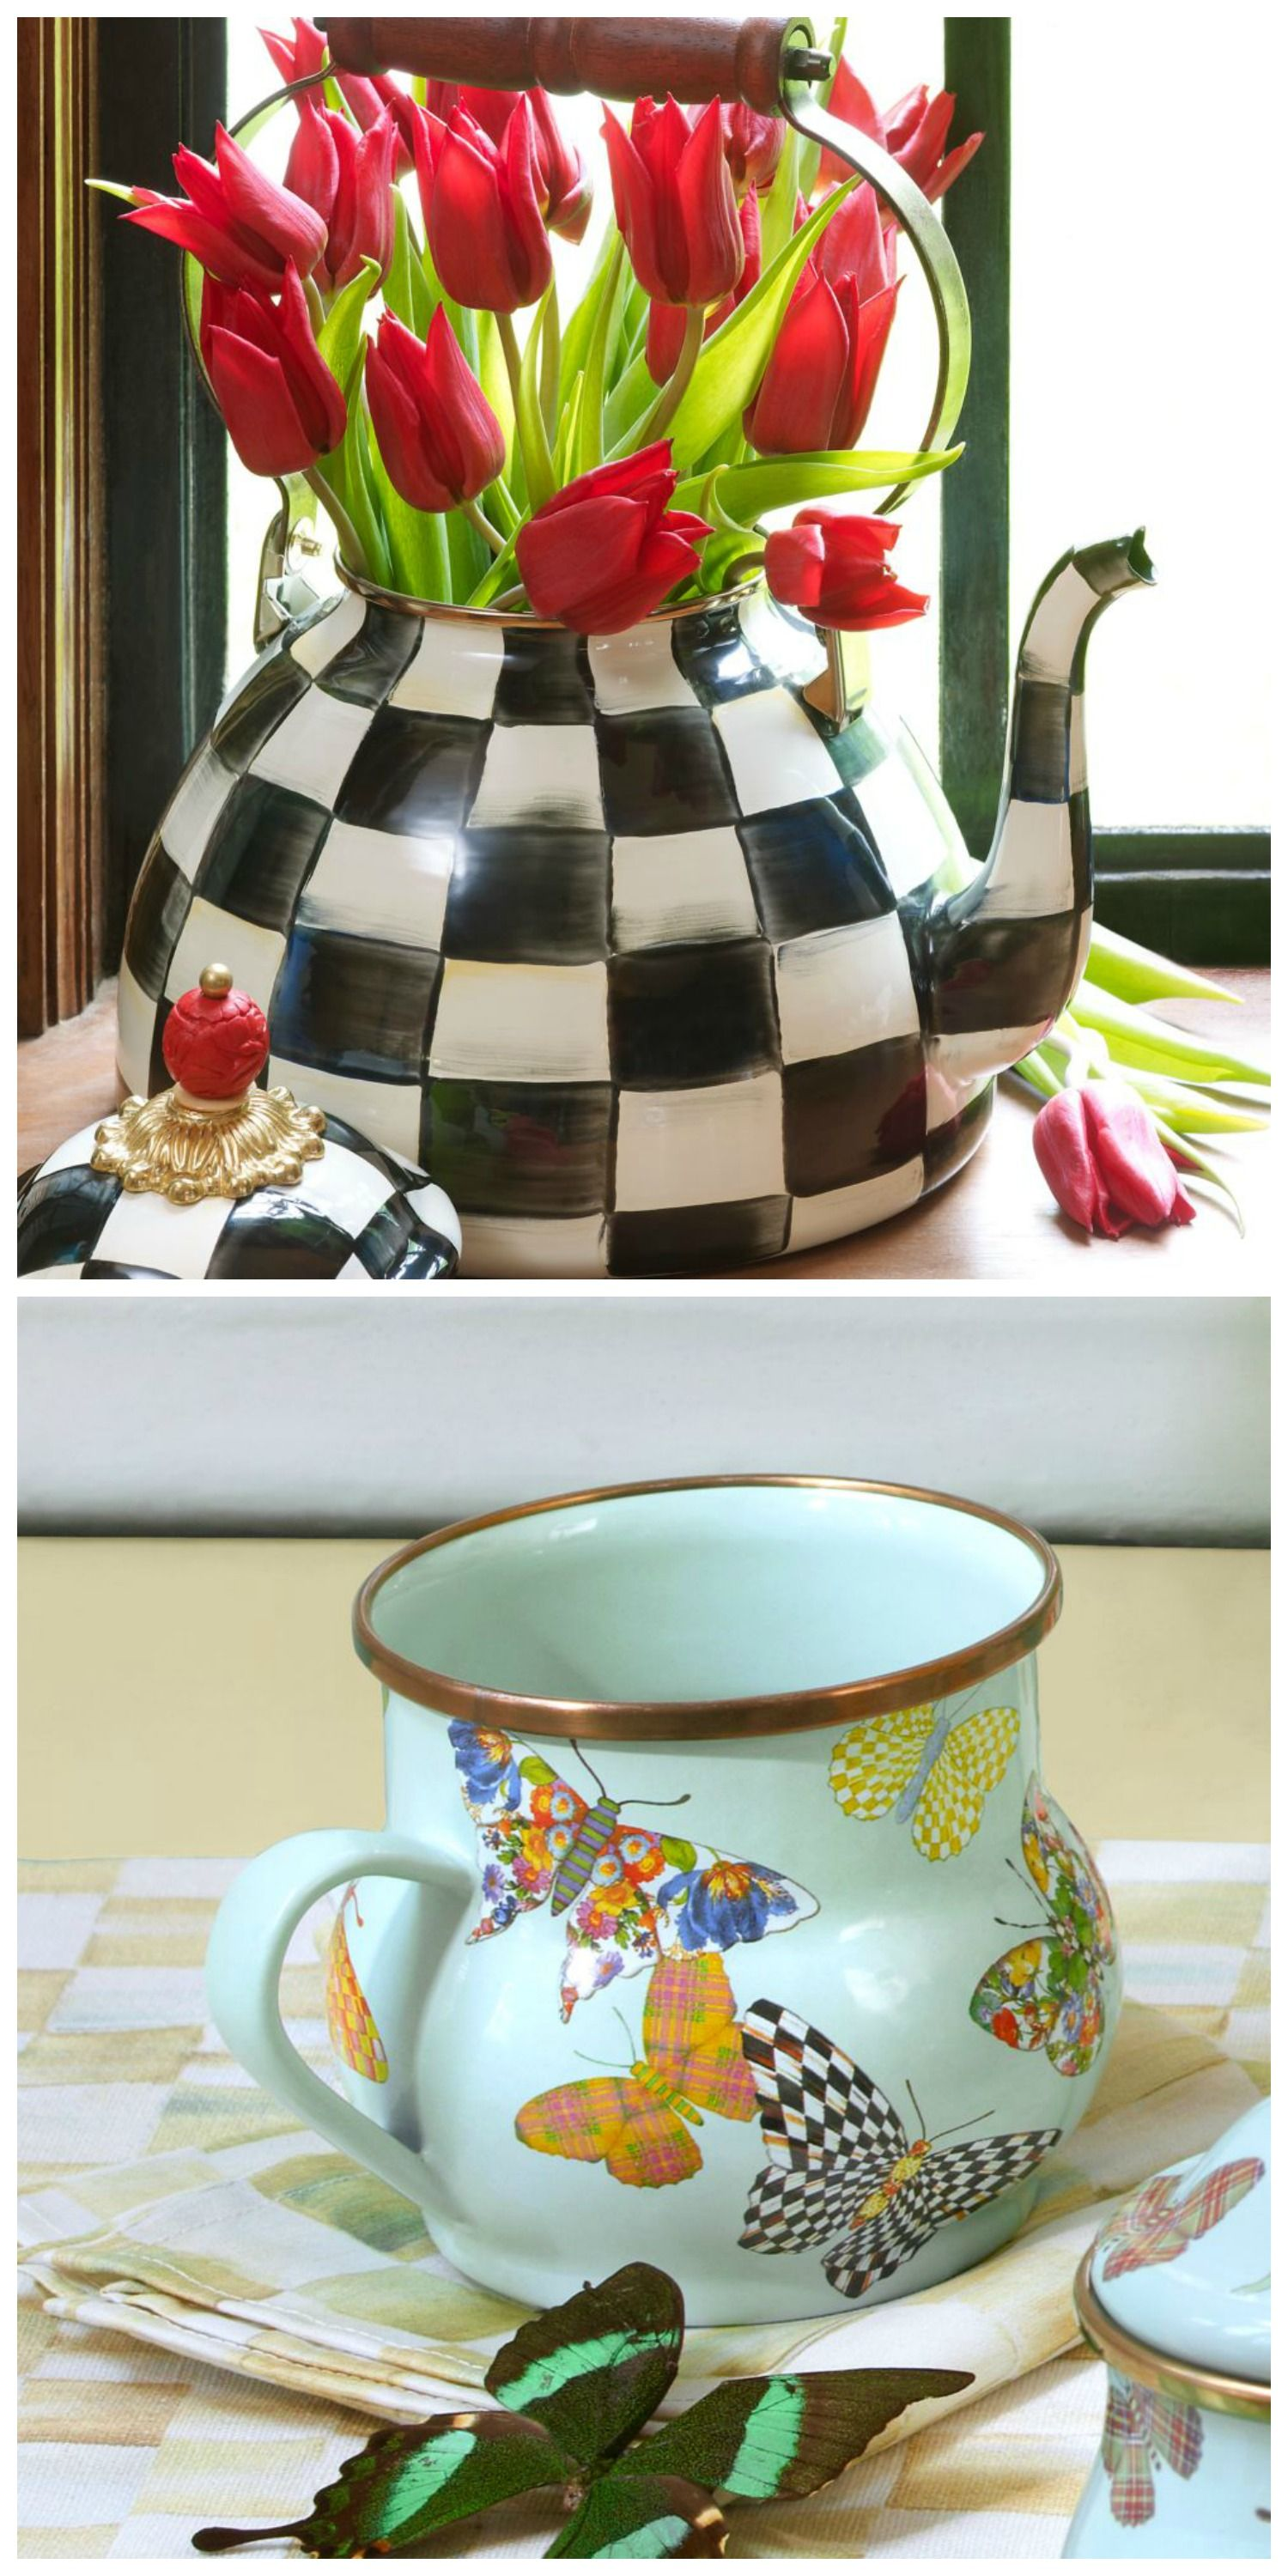 Tori S Friday Favorites Mackenziechilds Courtly Check Enamel Tea Kettle Butterfly Garden Sky Enamel Mugs Comment To Win Share O Tea Party Baby Shower My Cup Of Tea Alice In Wonderland